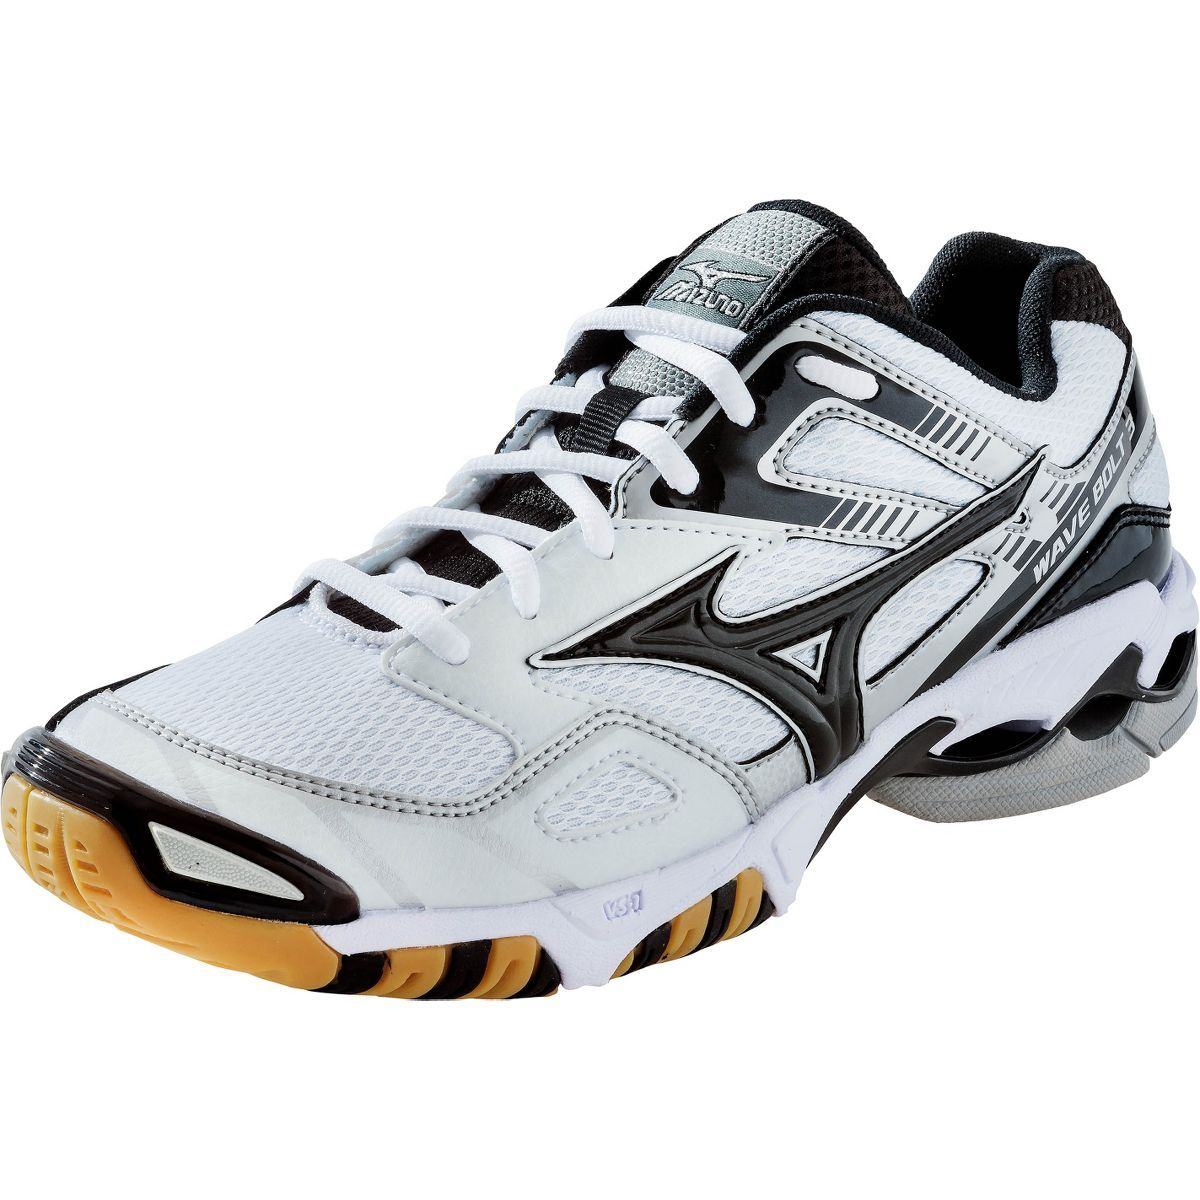 Mizuno Women S Wave Bolt 3 Mizuno Wave Technology Uniformly Disperses Shock Throughout The Sole Providing Lig Volleyball Shoes Sporty Shoes Badminton Shoes